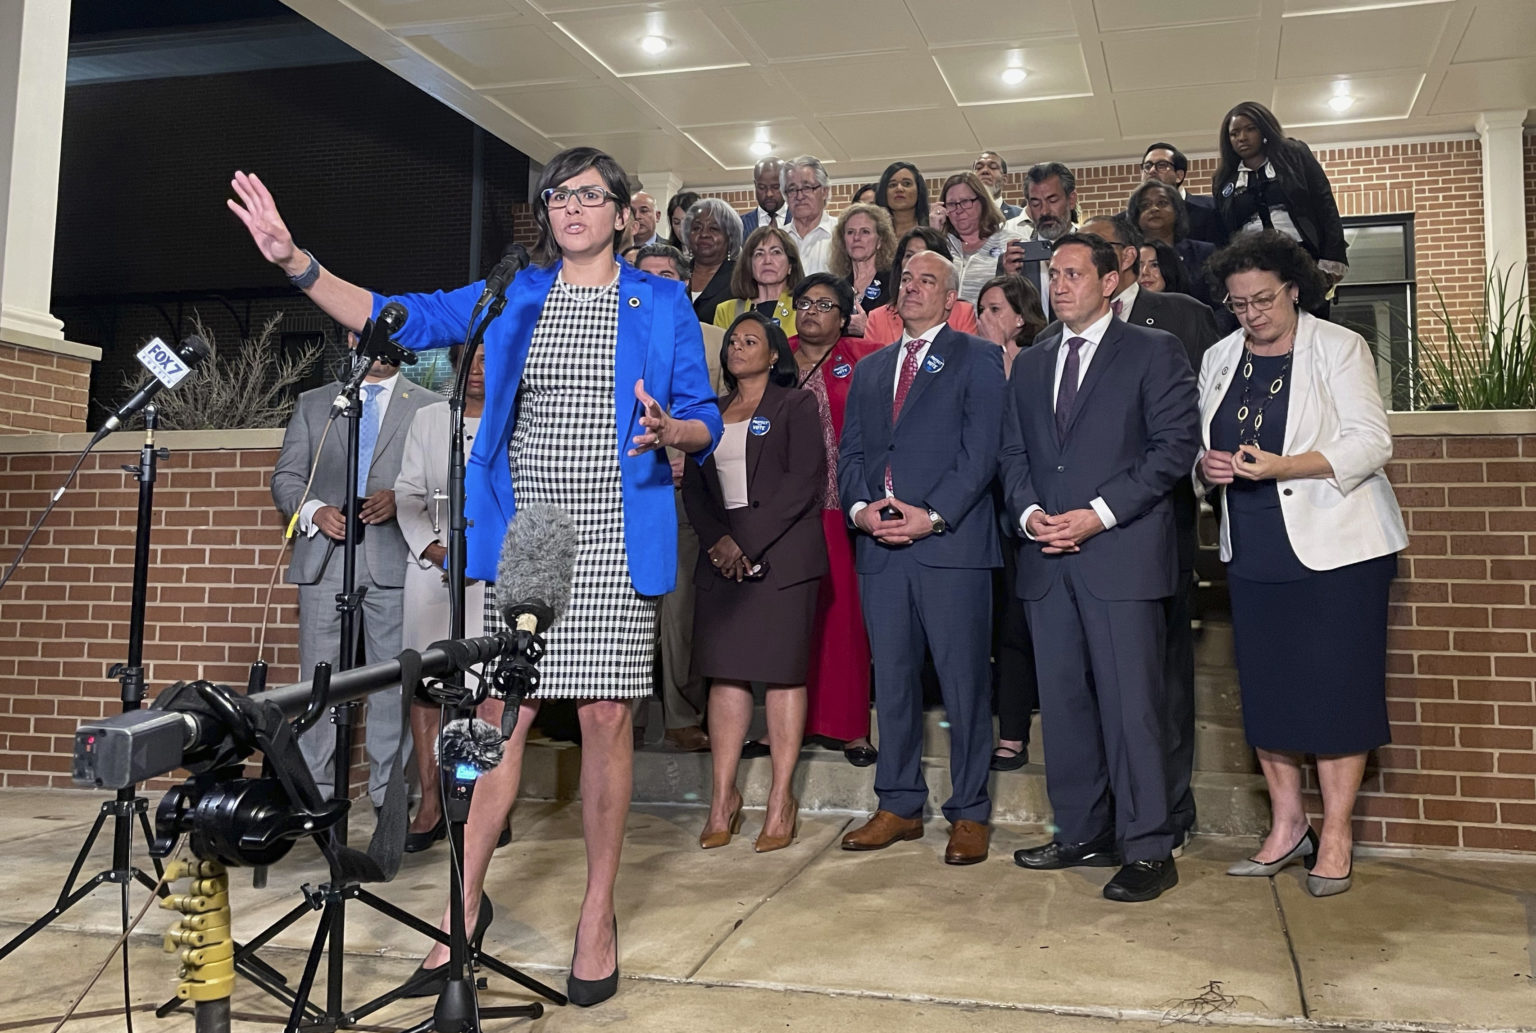 Texas state Representative Jessica Gonzales speaks during a news conference in Austin on May 31, 2021, after House Democrats pulled off a dramatic, last-ditch walkout and blocked one of the most restrictive voting bills in the U.S. from passing before a midnight deadline.